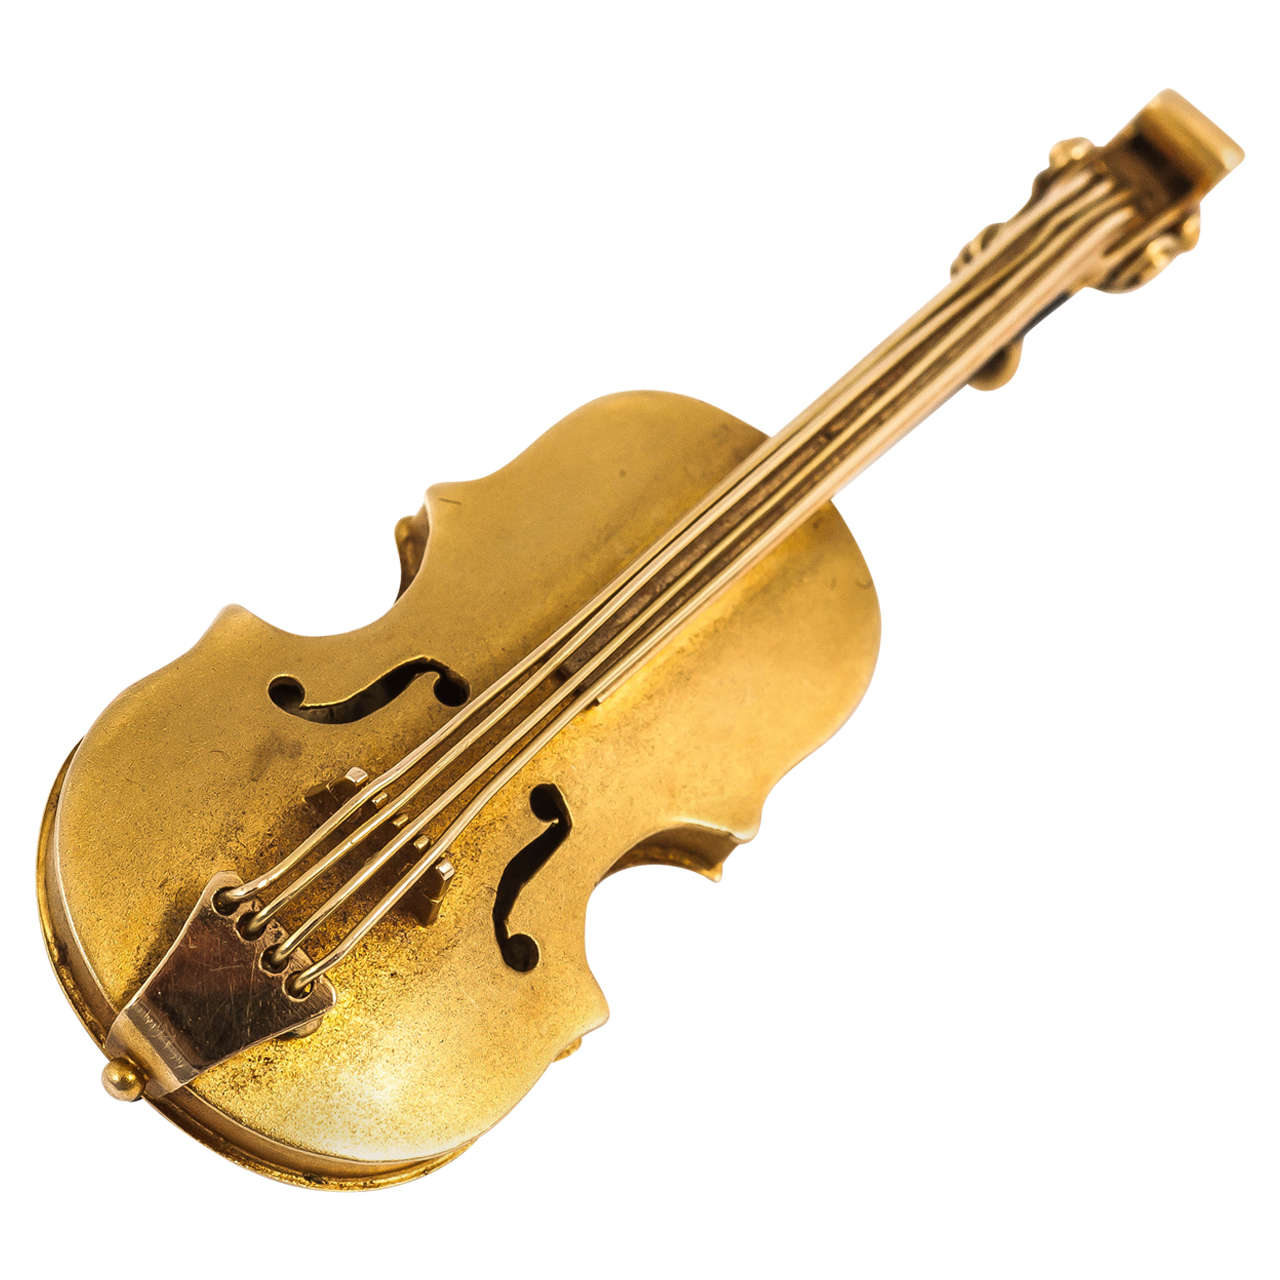 "Gold Violin makes ""independent living easier than ever"" with quality products to help you enjoy your home safely, get out and about, and take care of your health. Stretch your budget with Gold Violin promo codes and outfit your home for the way you live now."